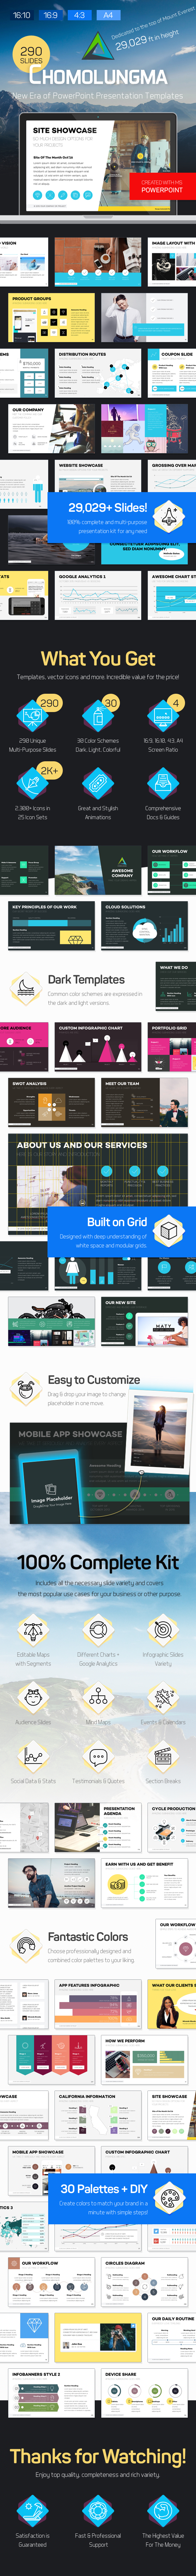 Chomolungma — PowerPoint Presentation Template Kit - Business PowerPoint Templates